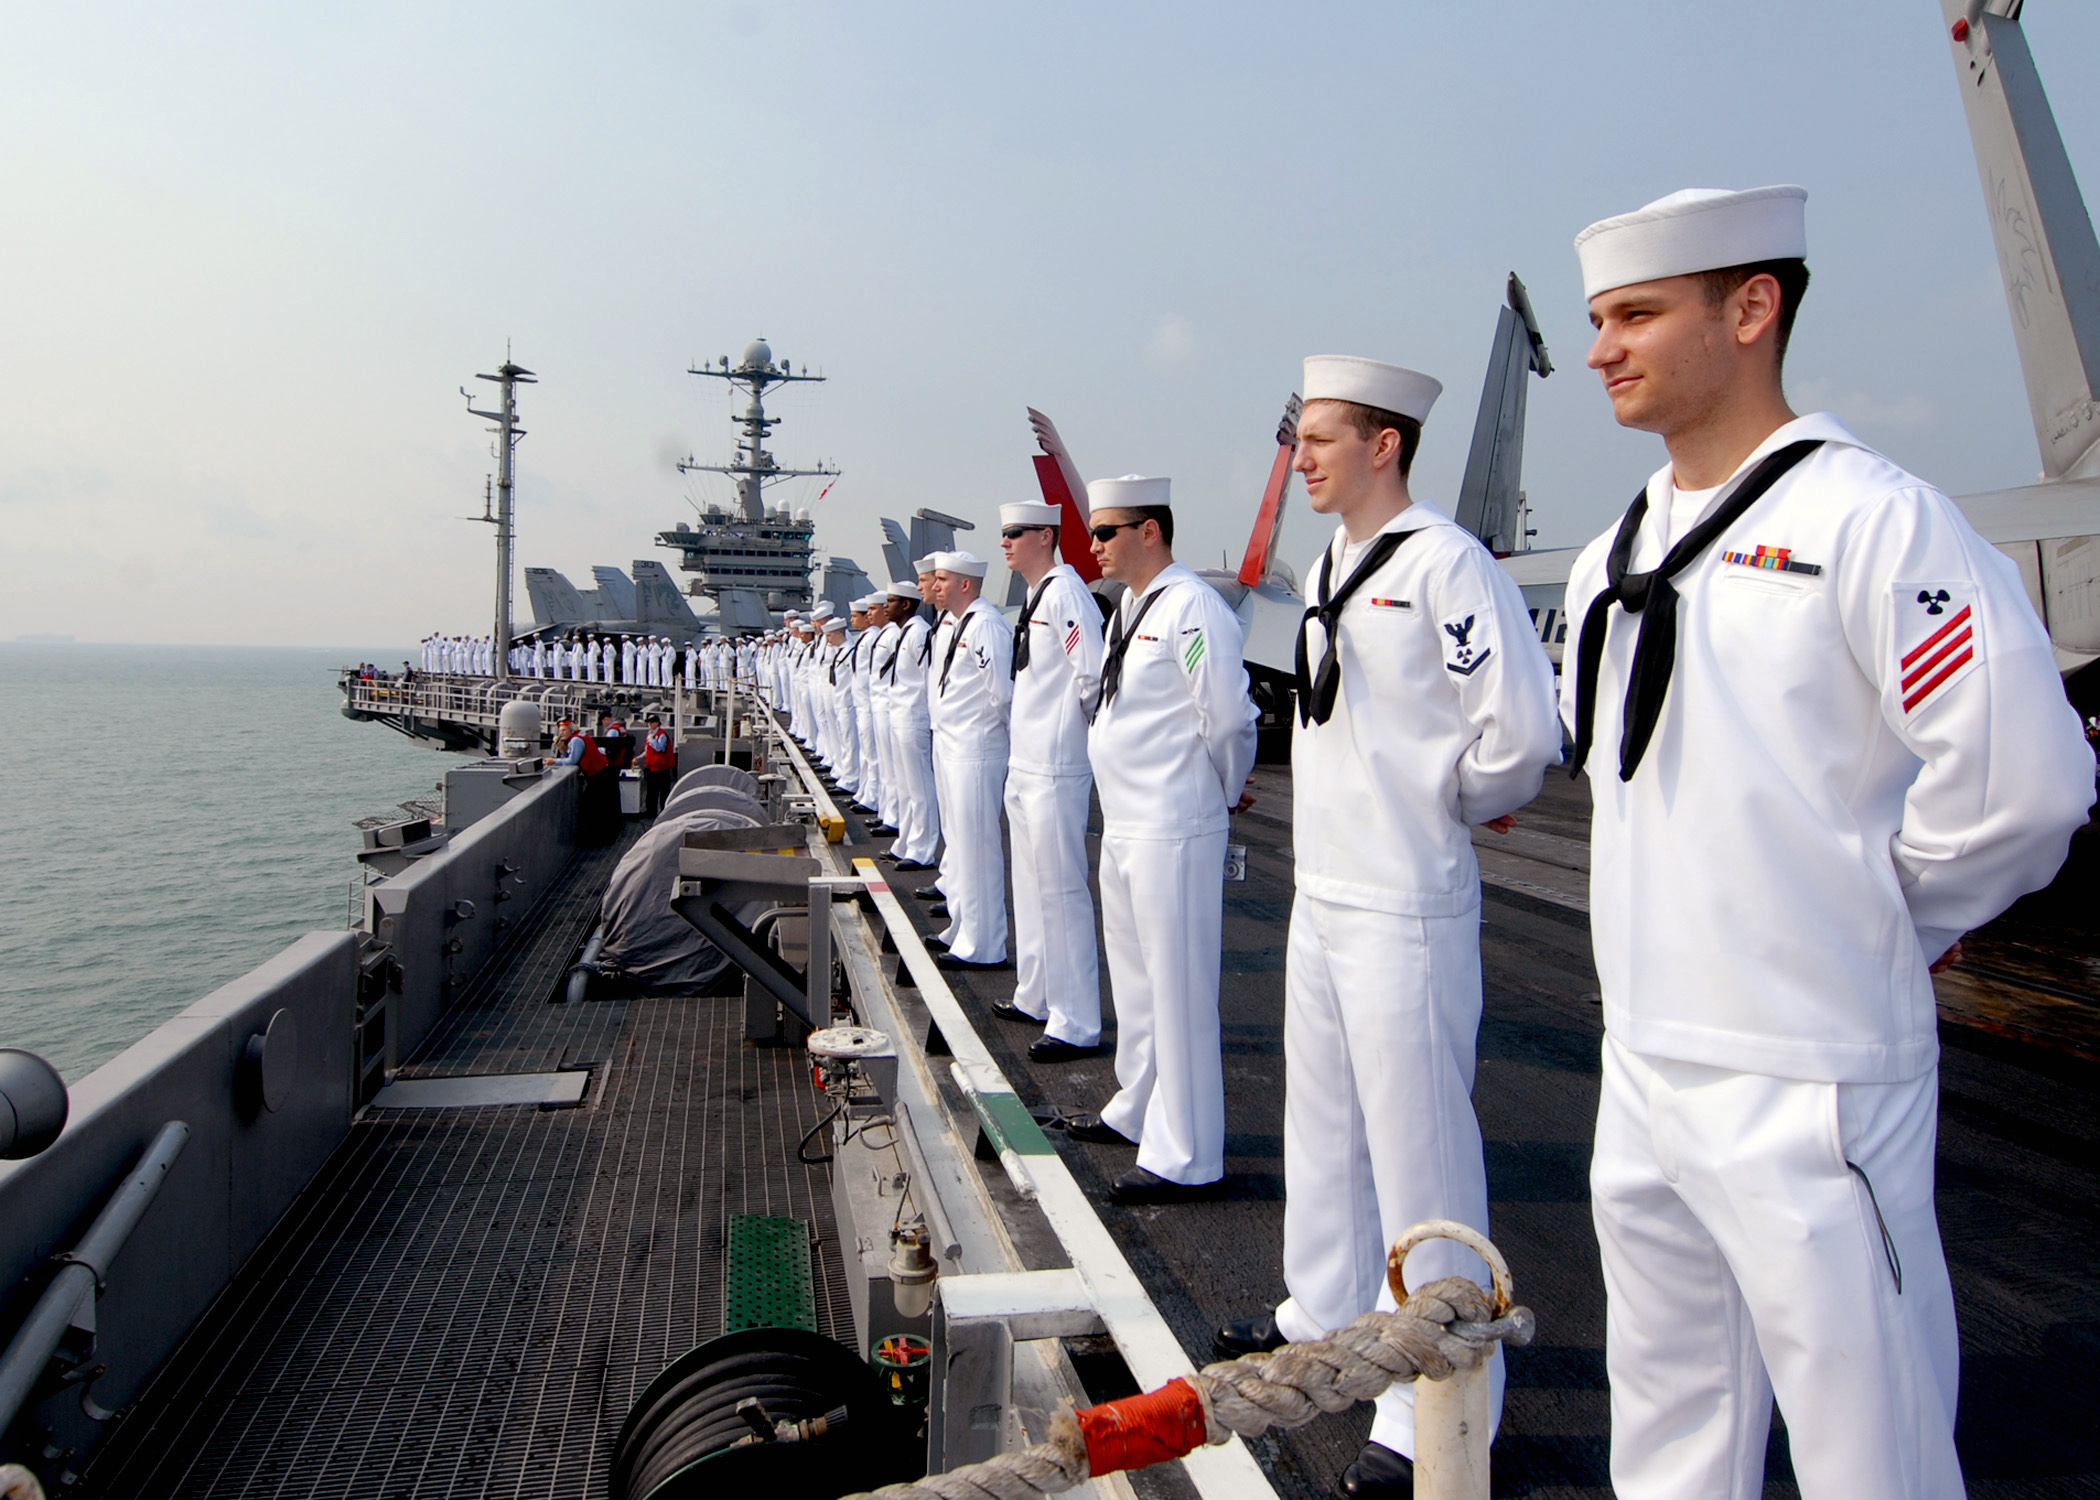 U.S. Navy - Loans - Personal - Unsecured - Business